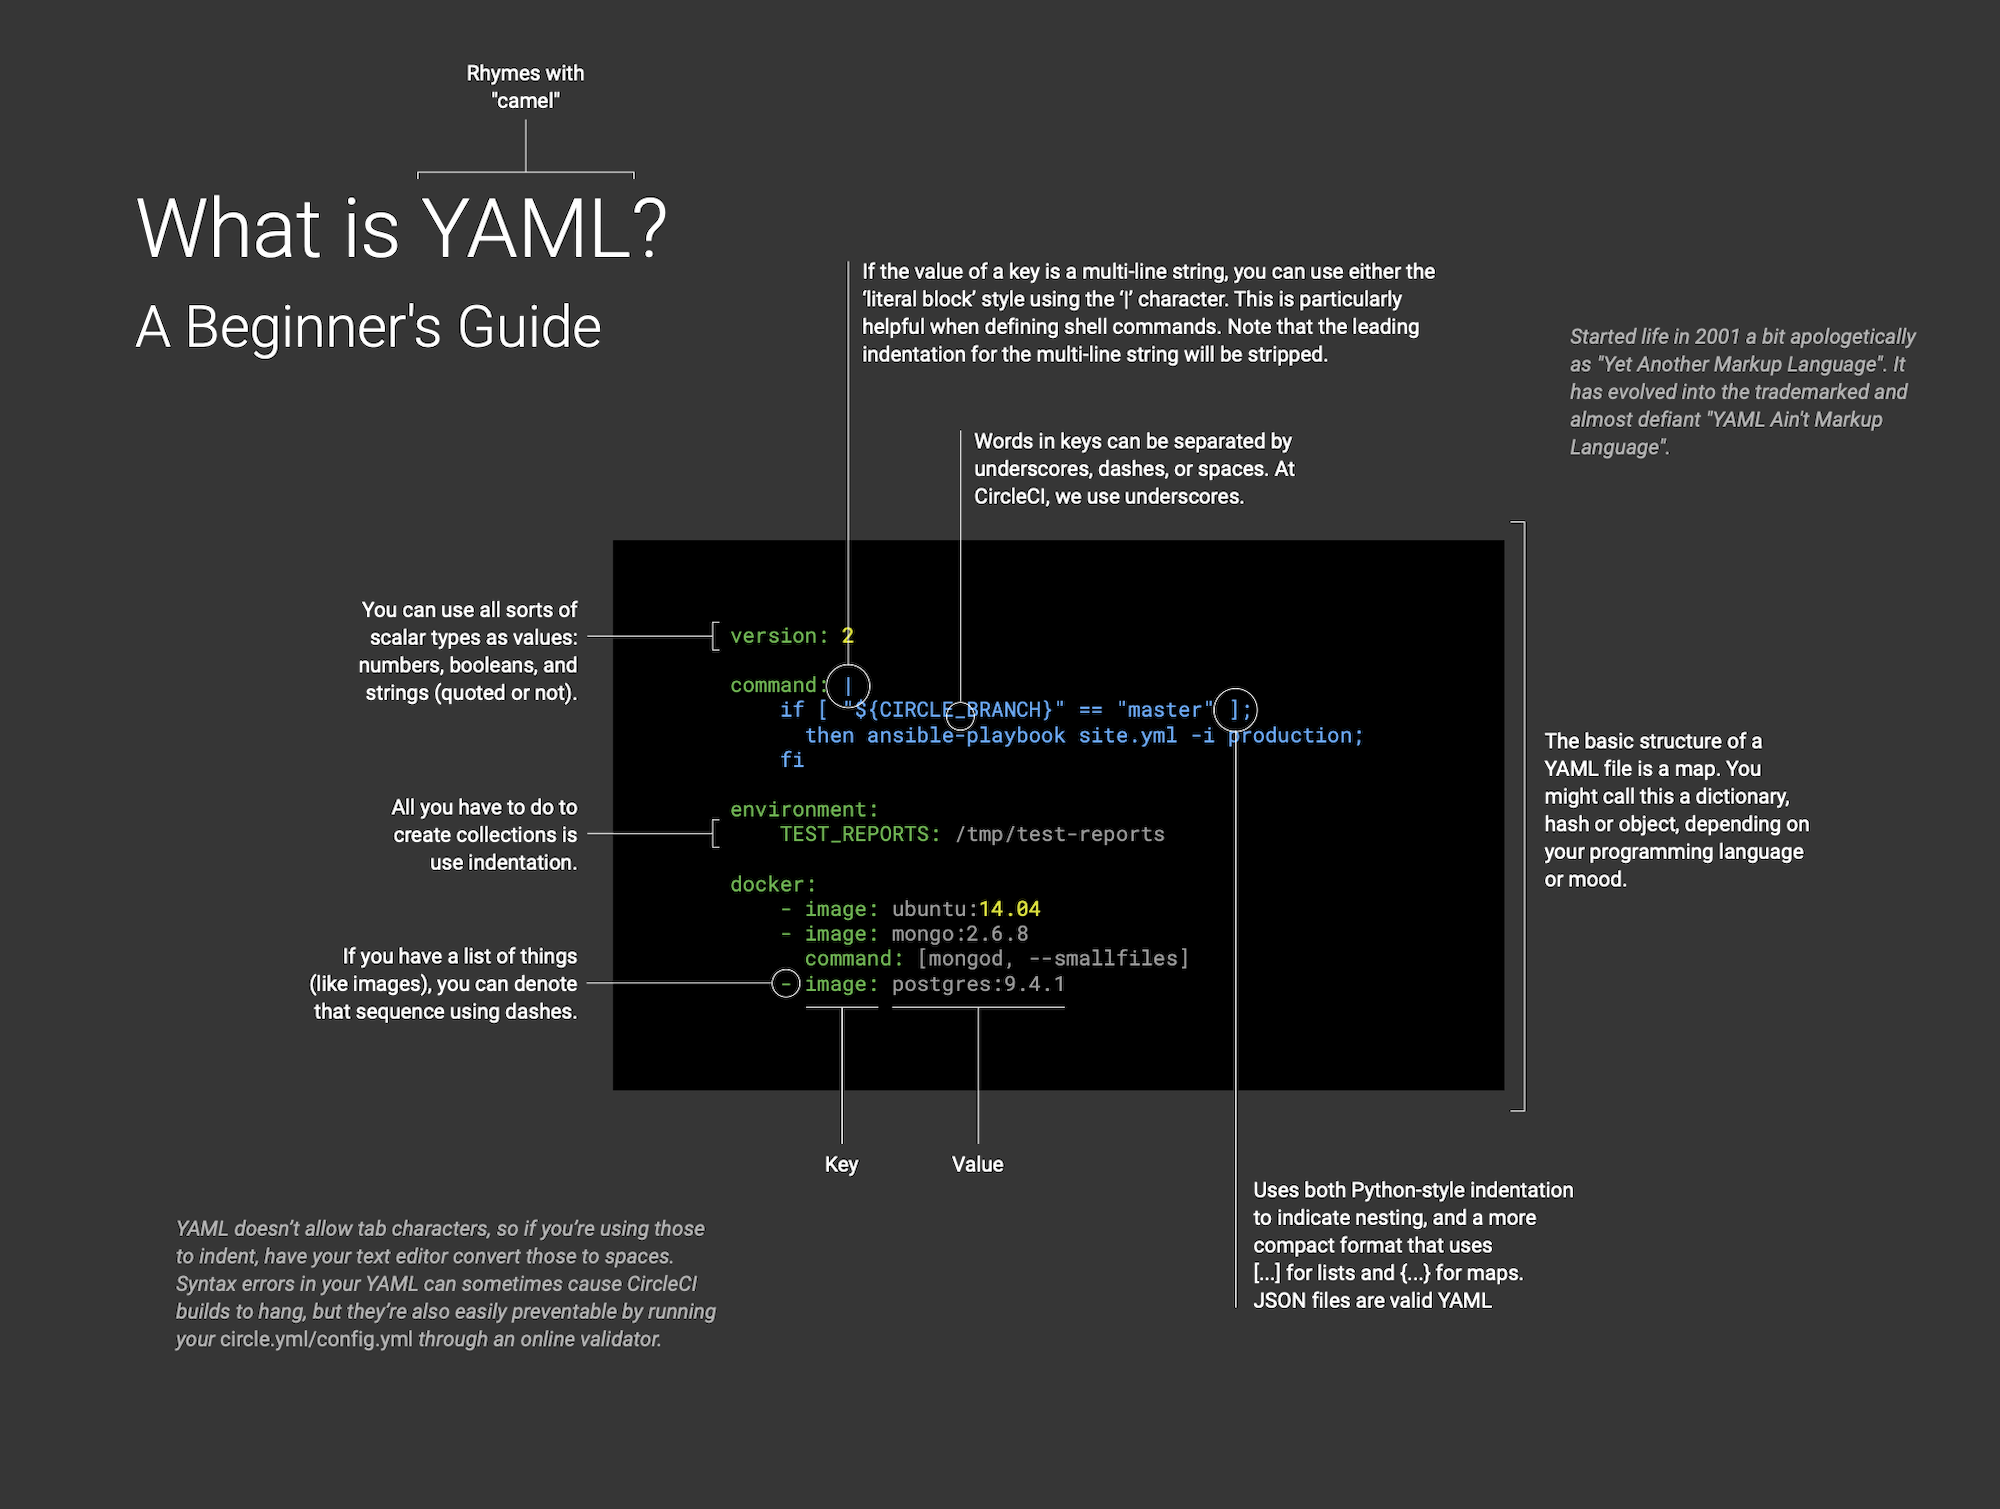 What is YAML diagram